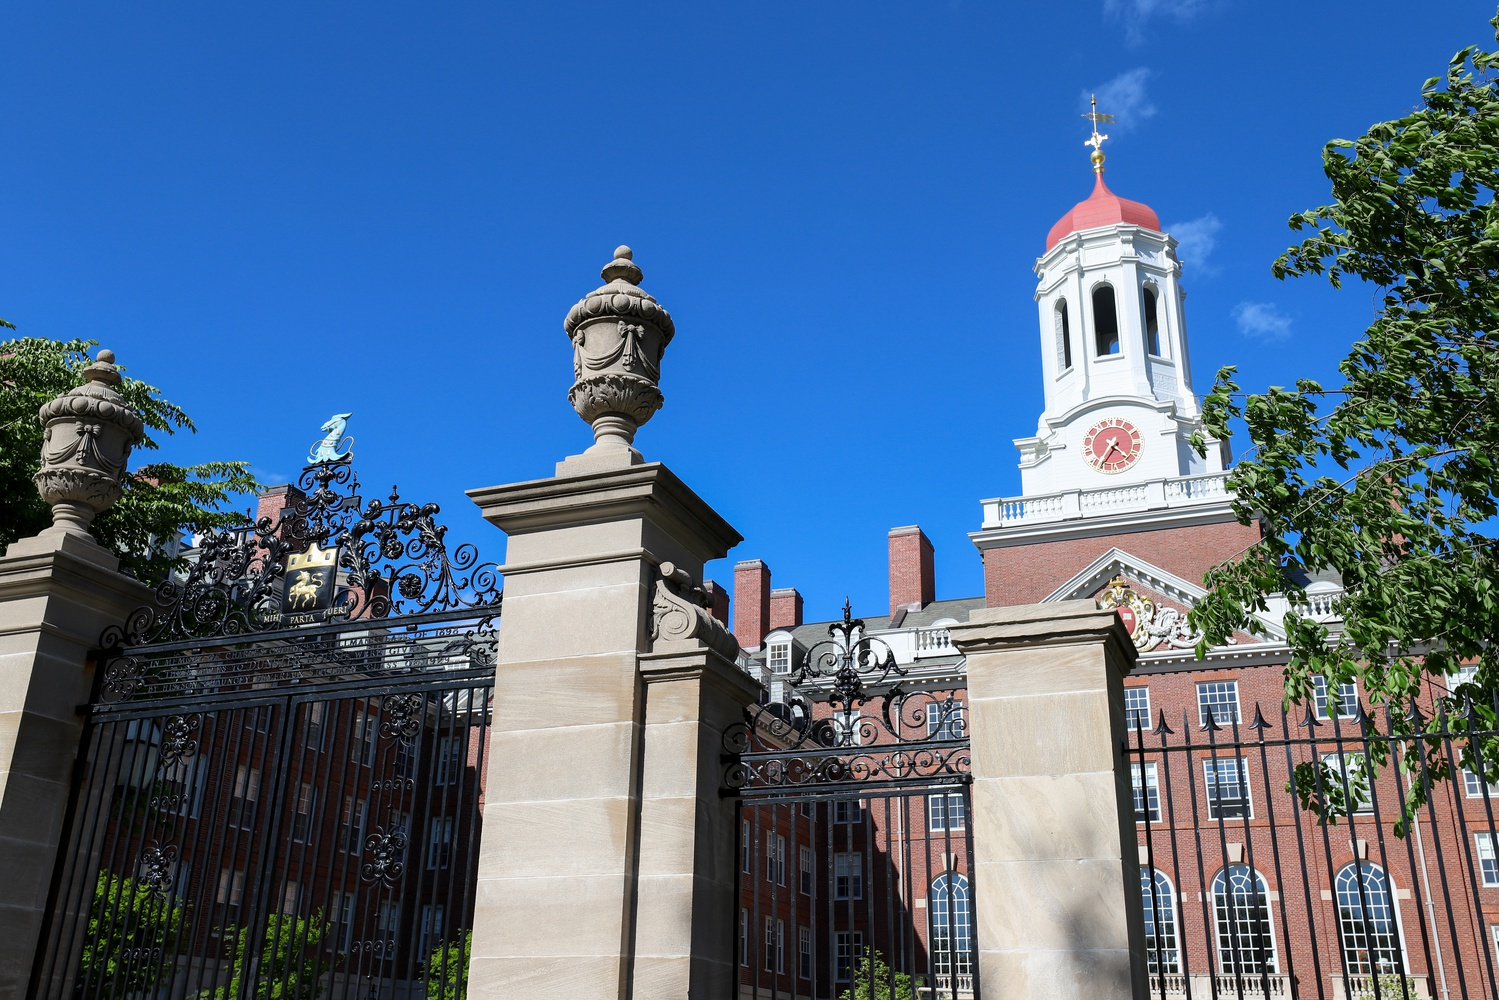 During the 1993-1994 academic year, a group of Dunster House tutors sued other Dunster tutors for libel following controversy over nepotism and Faculty Dean misconduct.